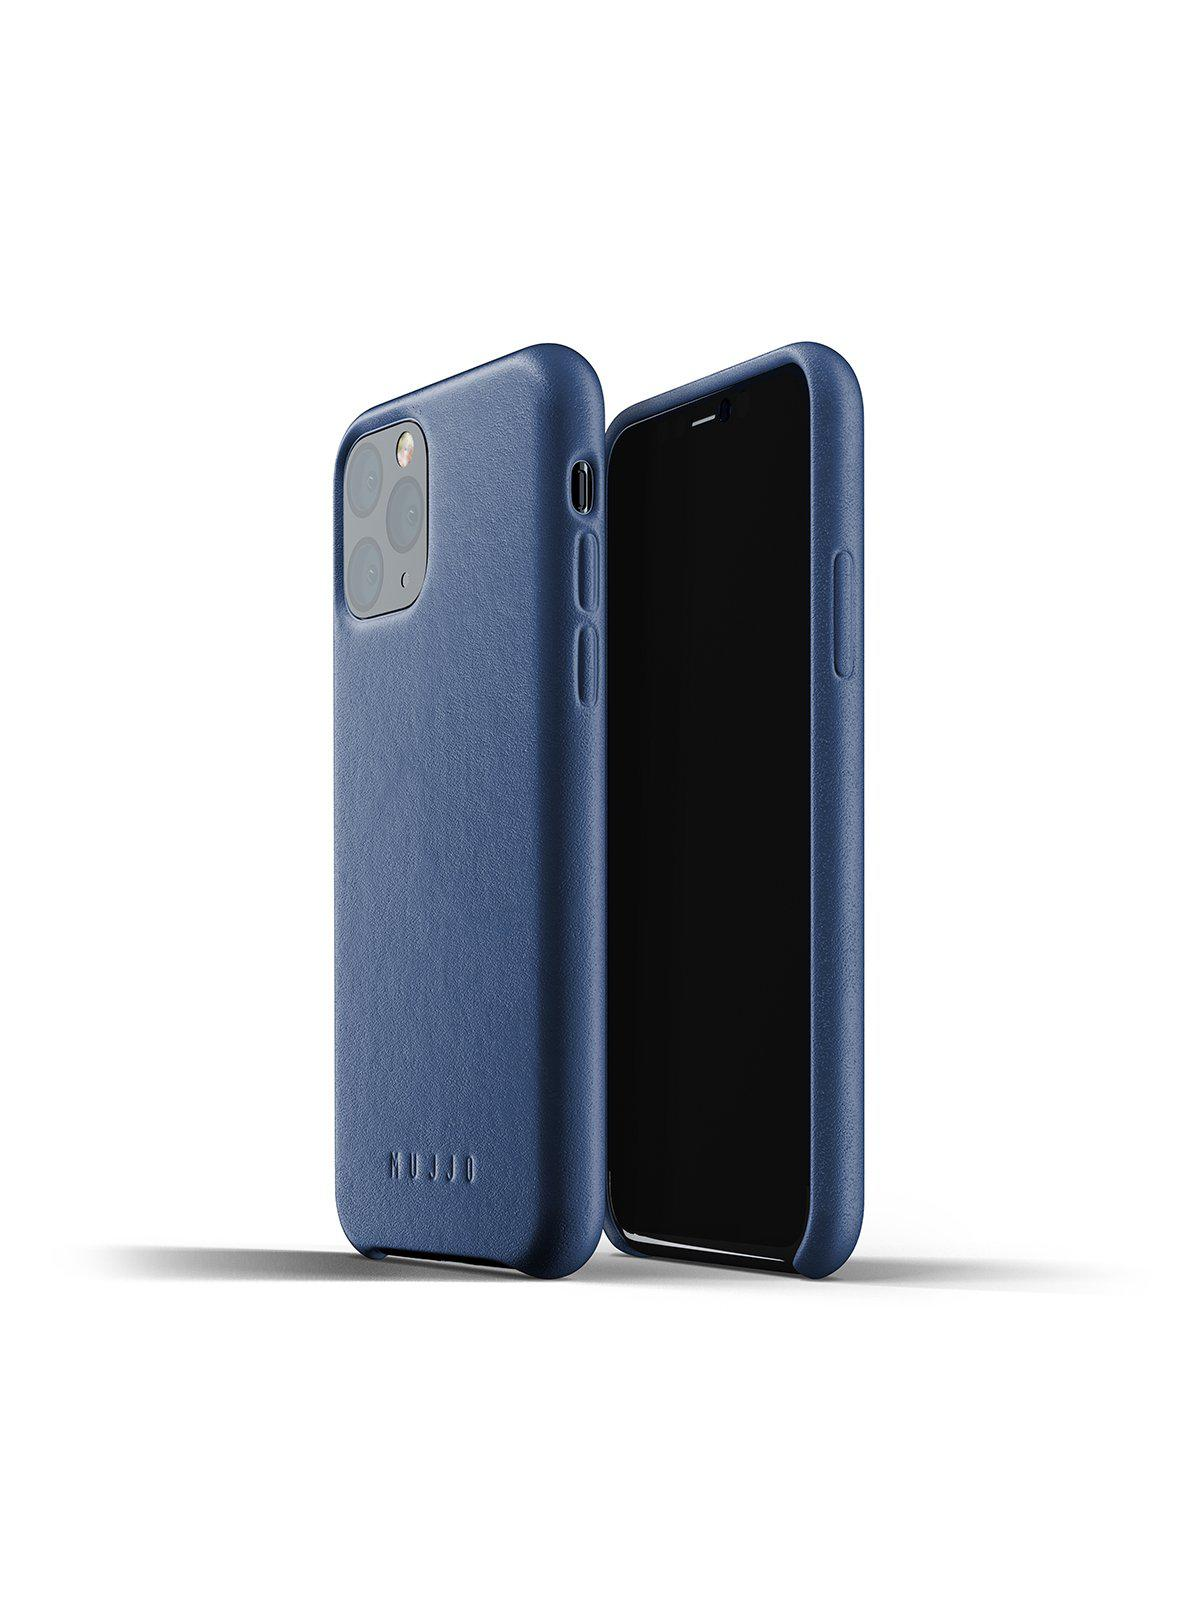 Mujjo Full Leather Case for iPhone 11 Pro Monaco Blue - MORE by Morello Indonesia